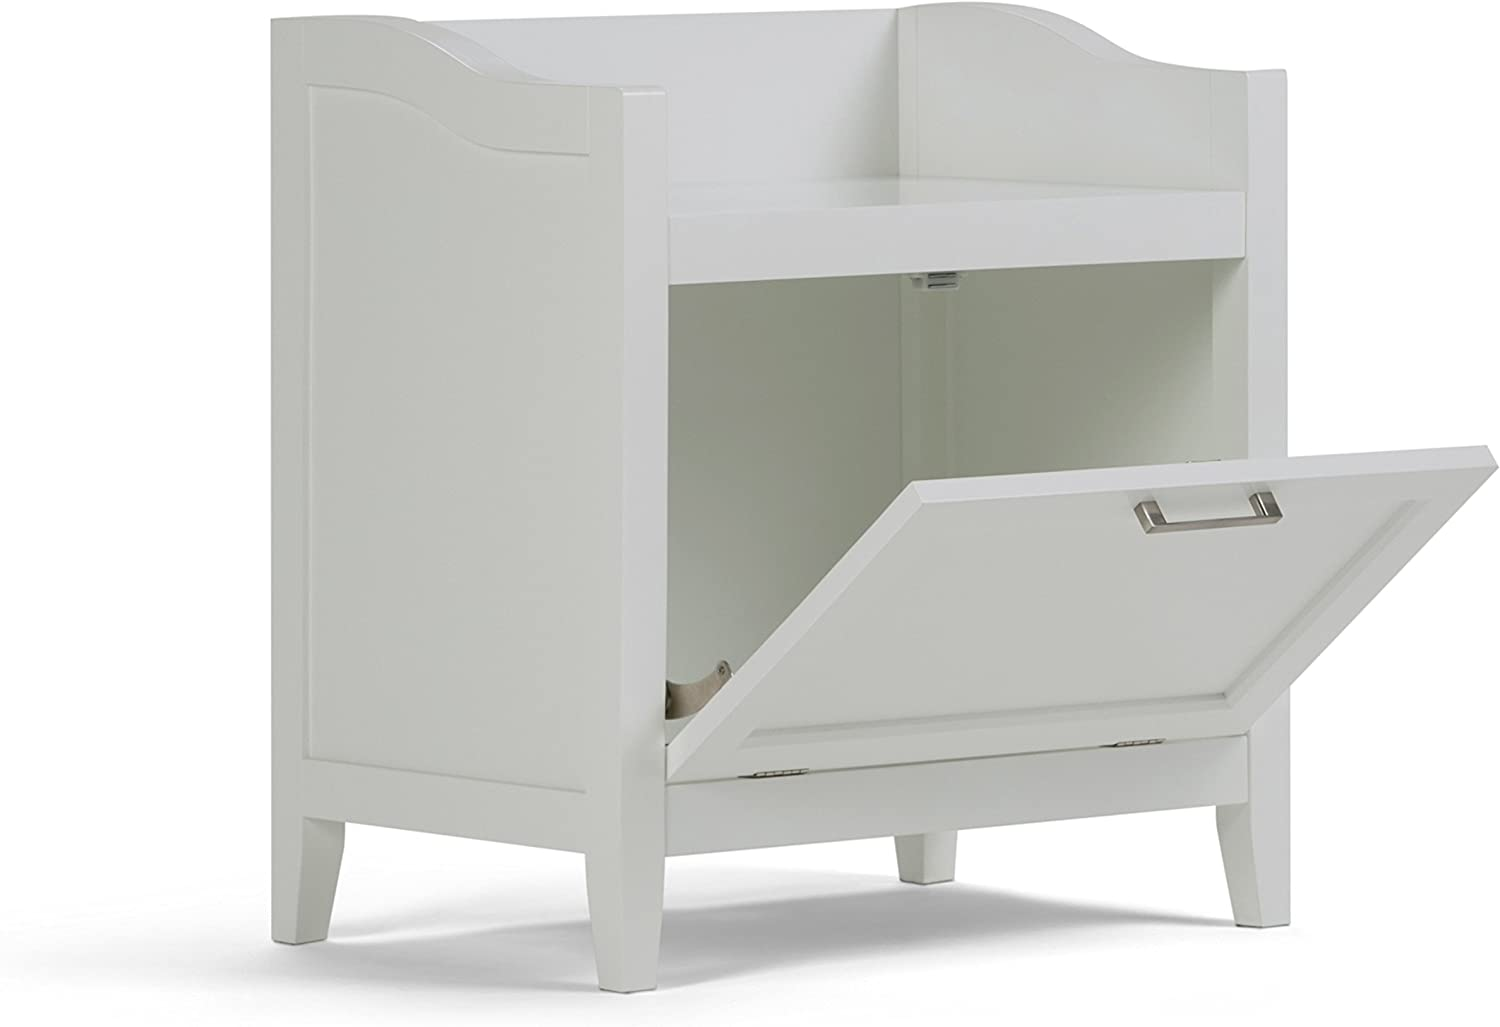 Simpli Home Avington 24.2 inch H x 21.7 inch W Storage Hamper Bench in White